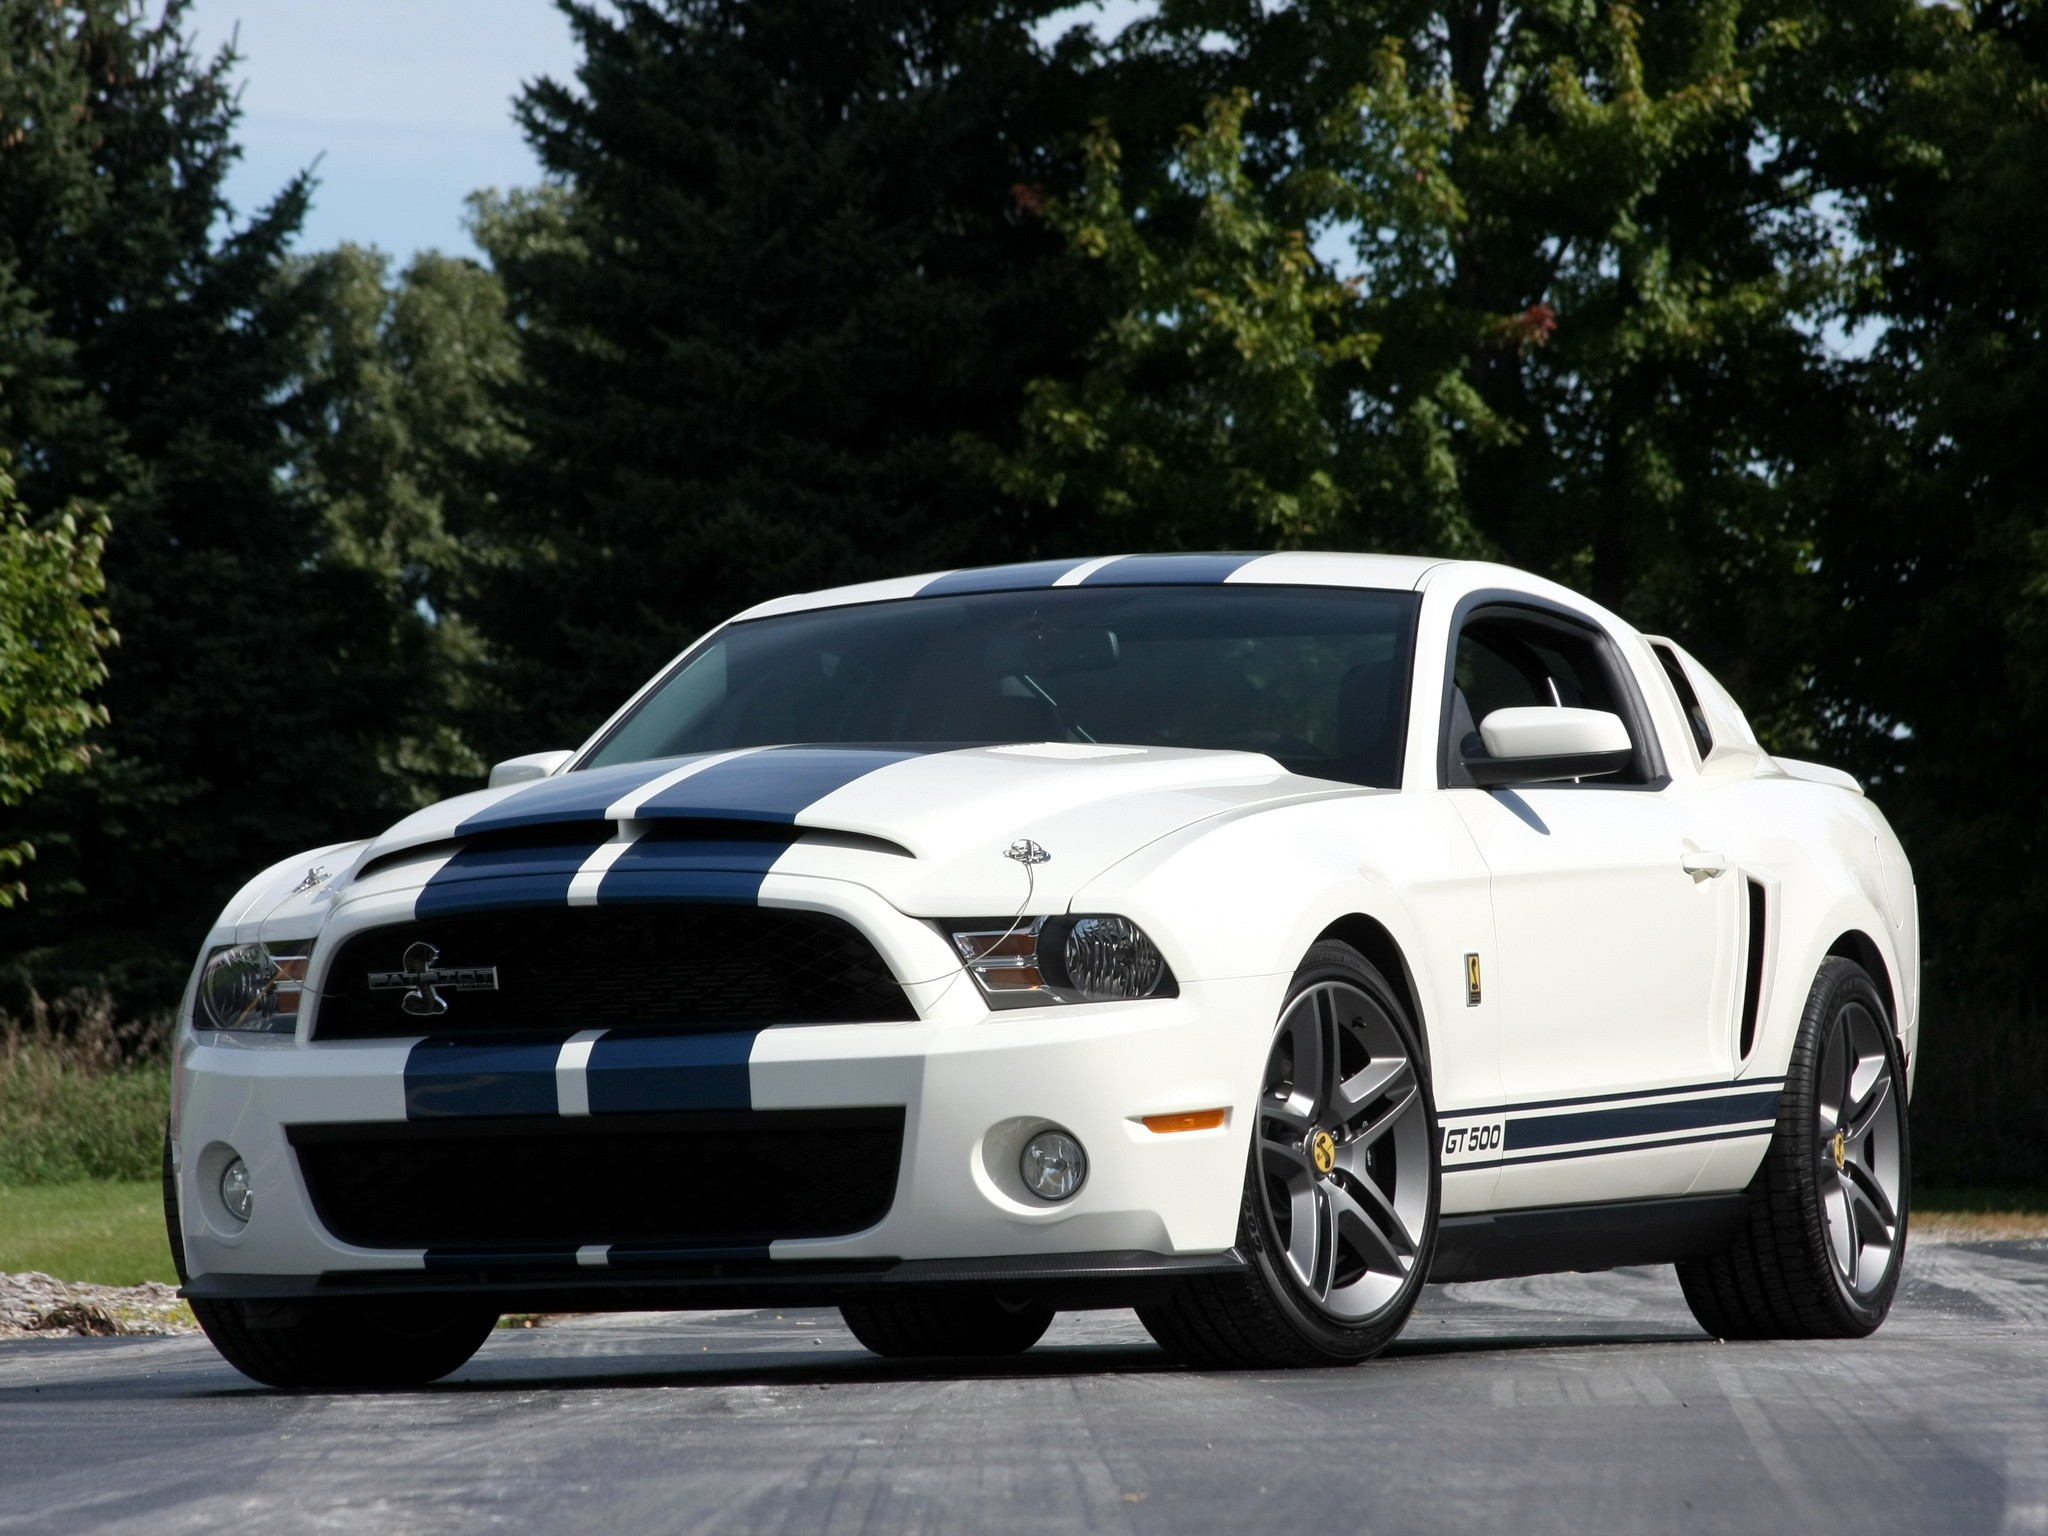 2009 ford mustang shelby gt500 horsepower. Black Bedroom Furniture Sets. Home Design Ideas